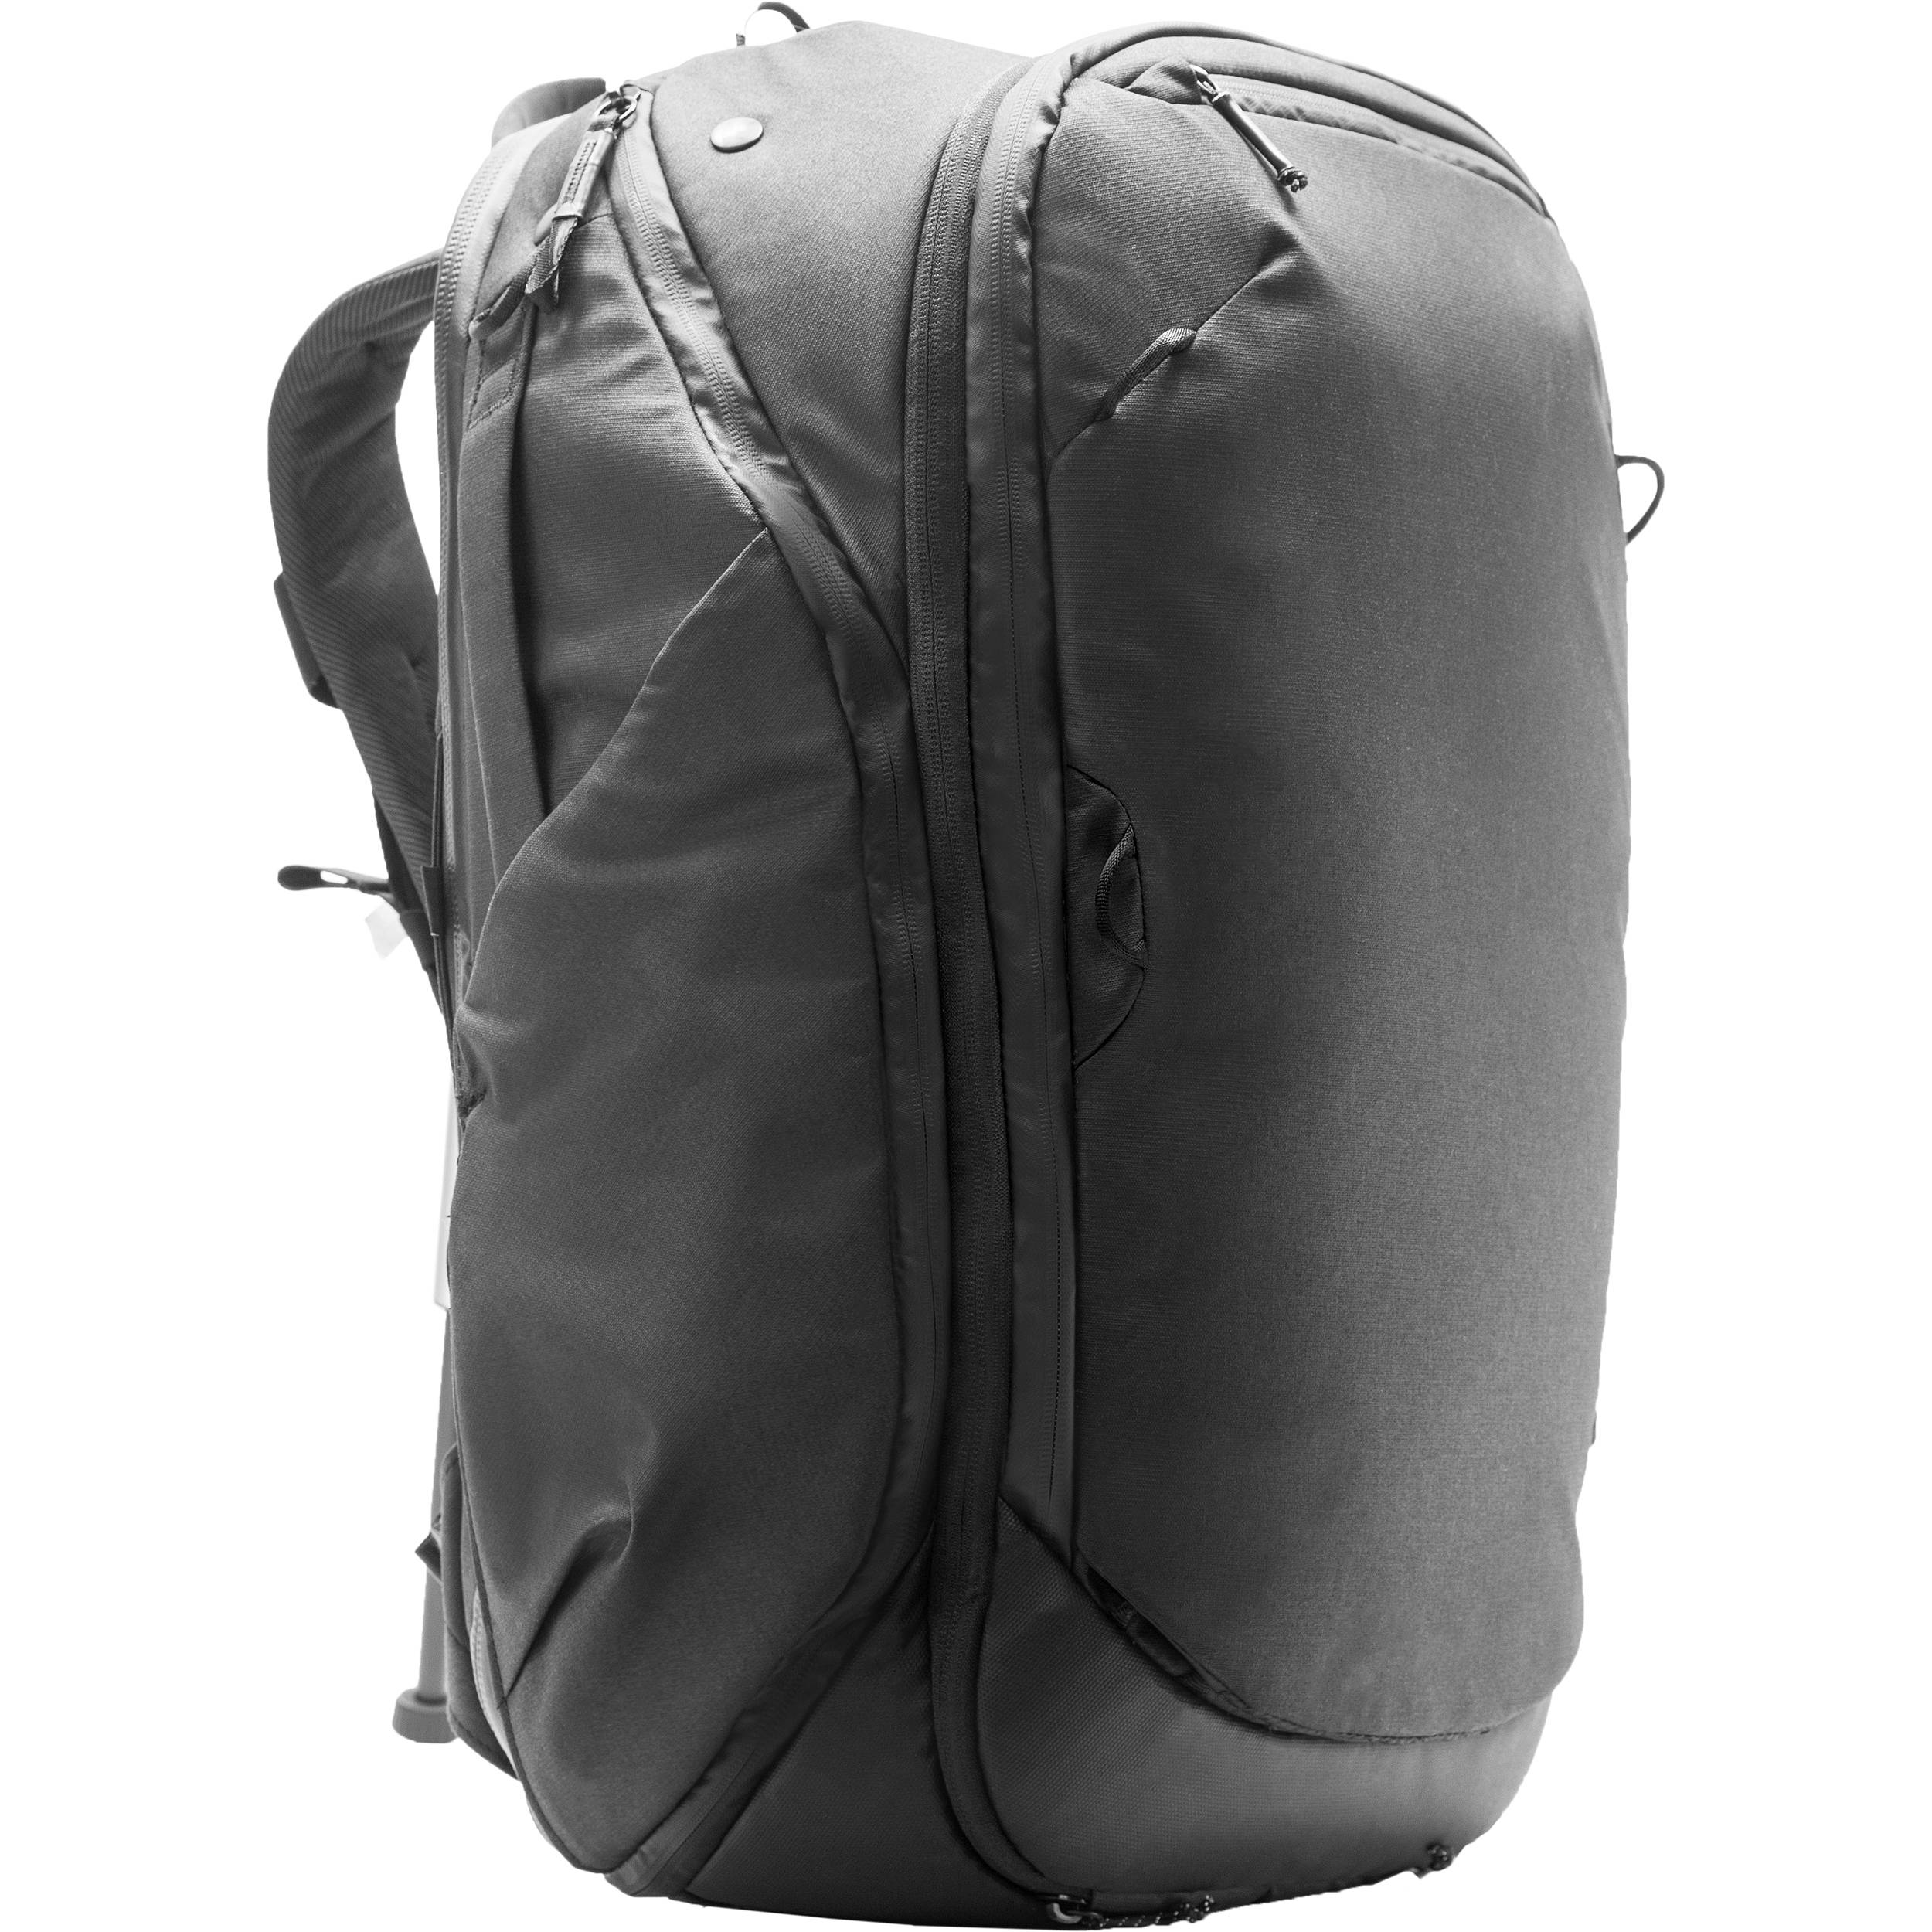 Peak Design Travel Backpack (Black) BTR-45-BK-1 B H Photo Video 5c7c2831ef